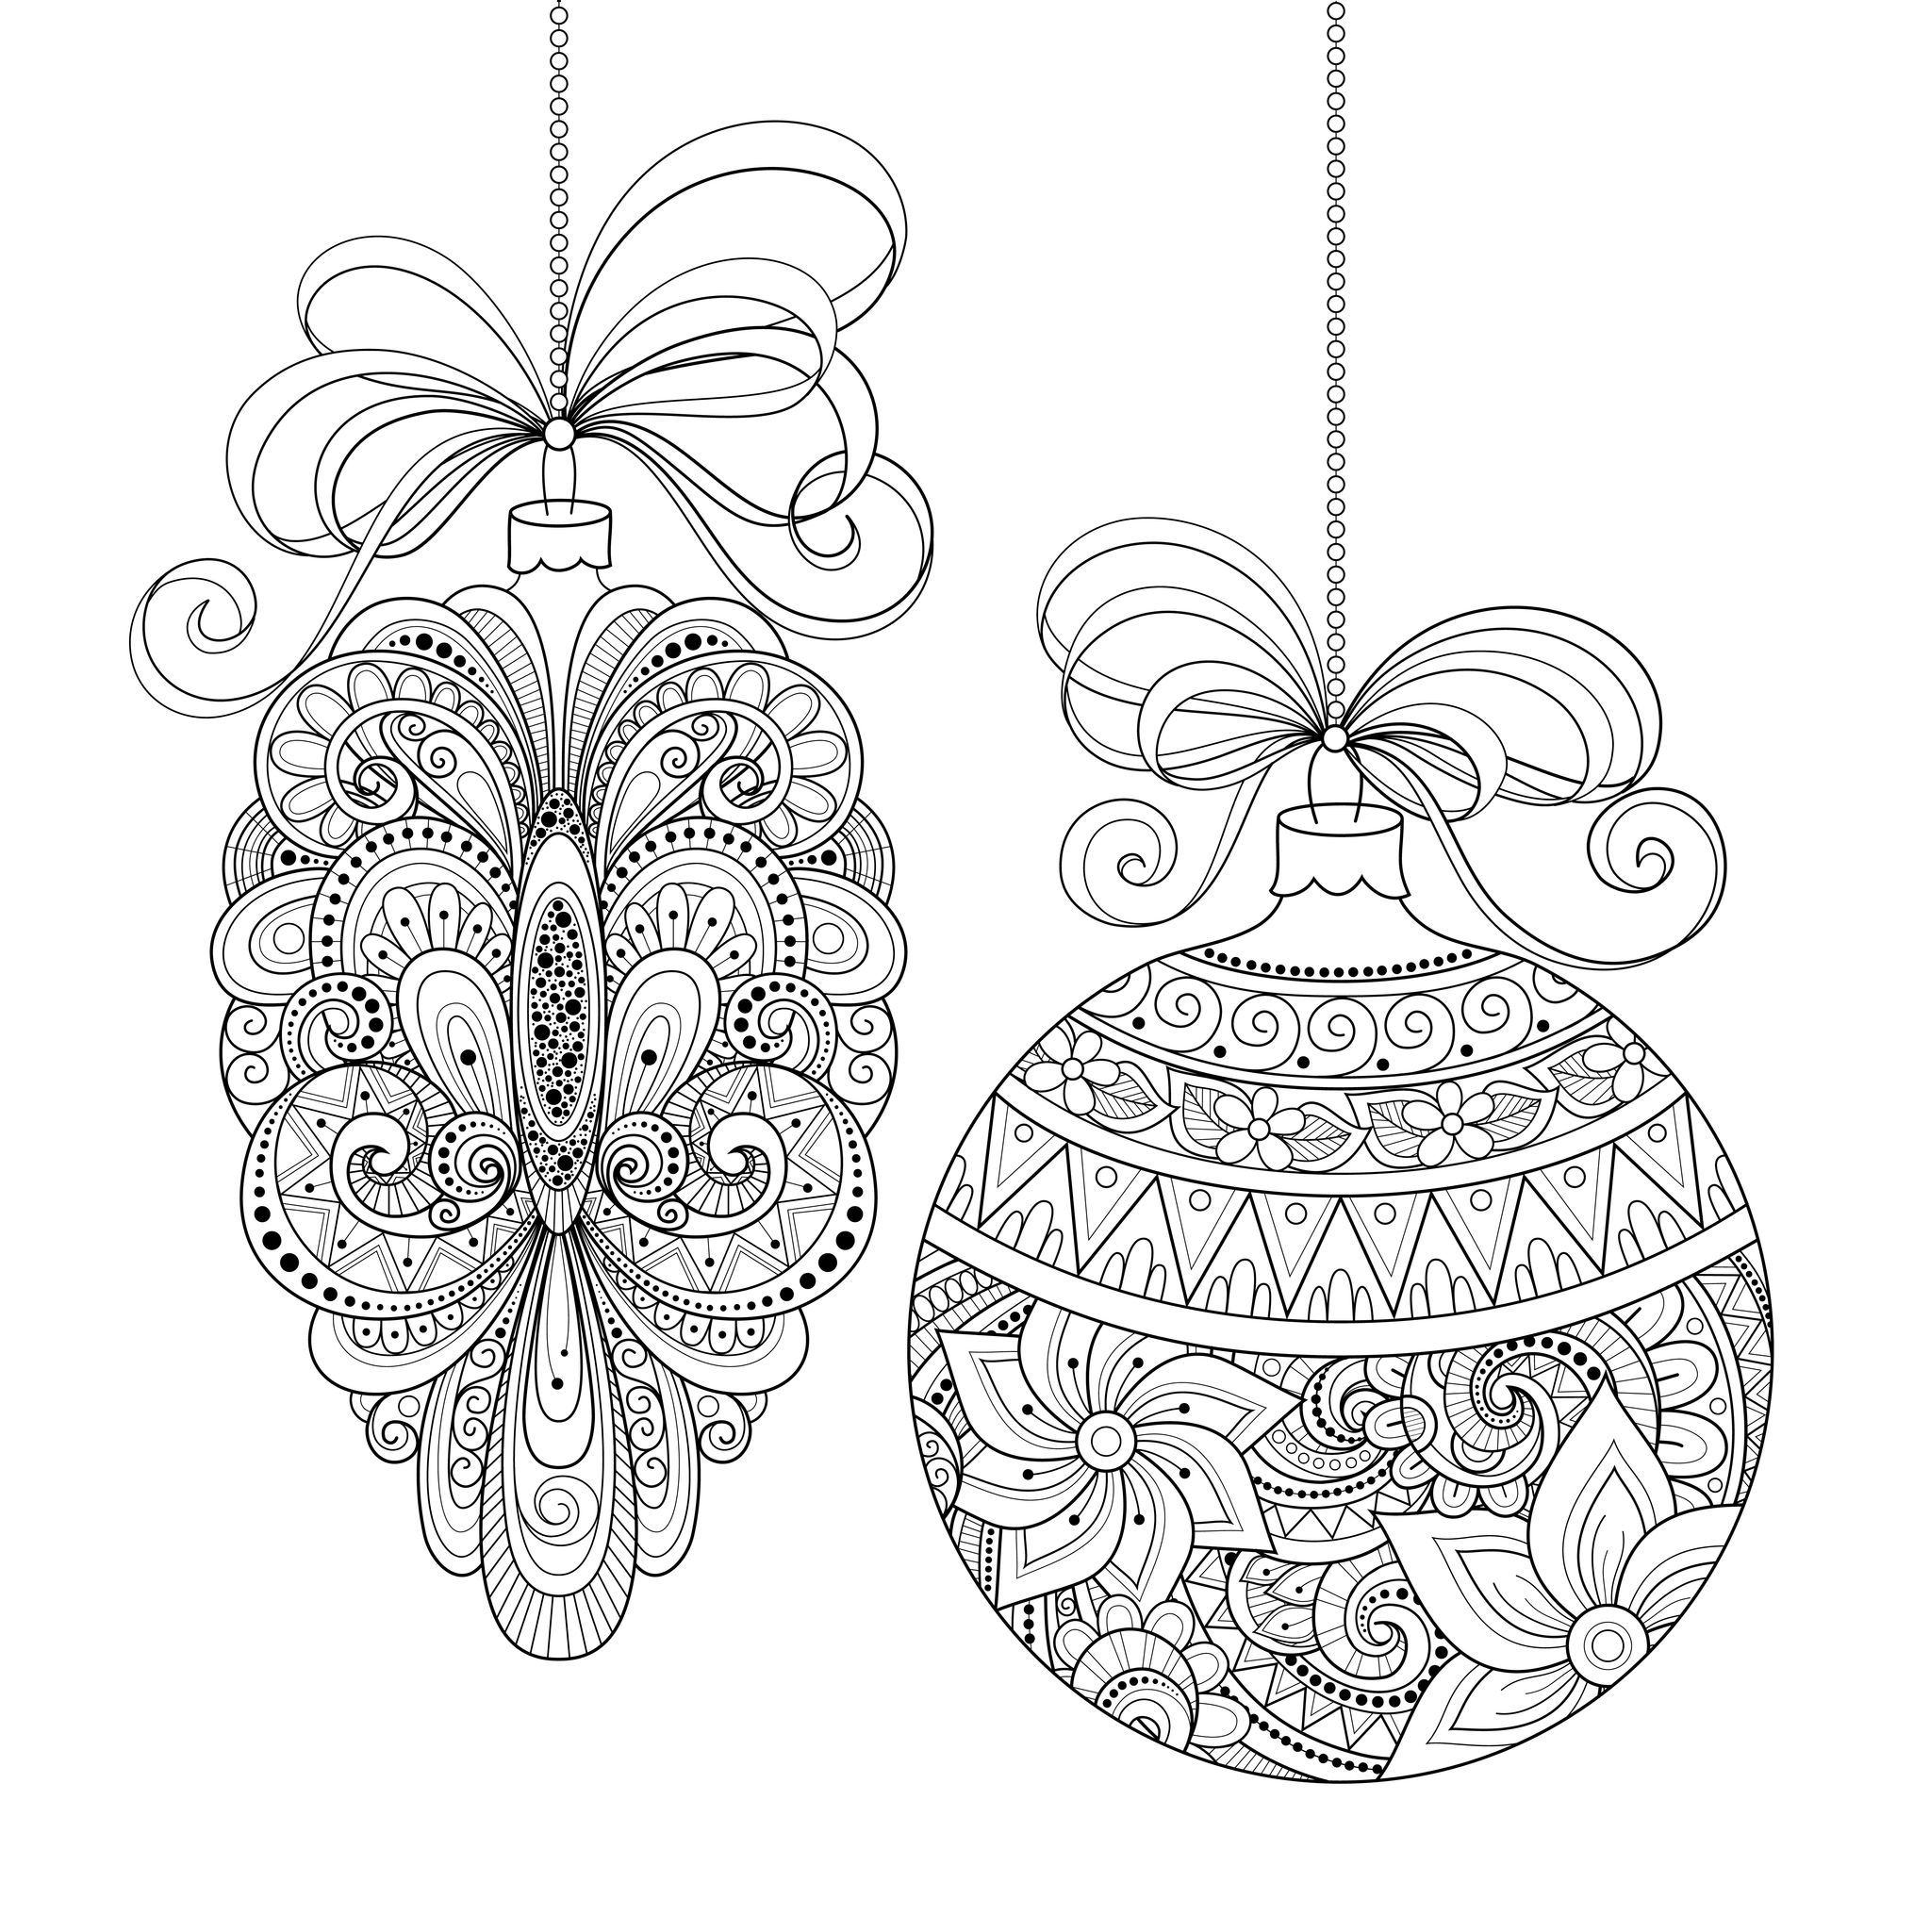 christmas ornaments use this coloring page to make your own greeting cards from the - Christmas Coloring Pages For Adults